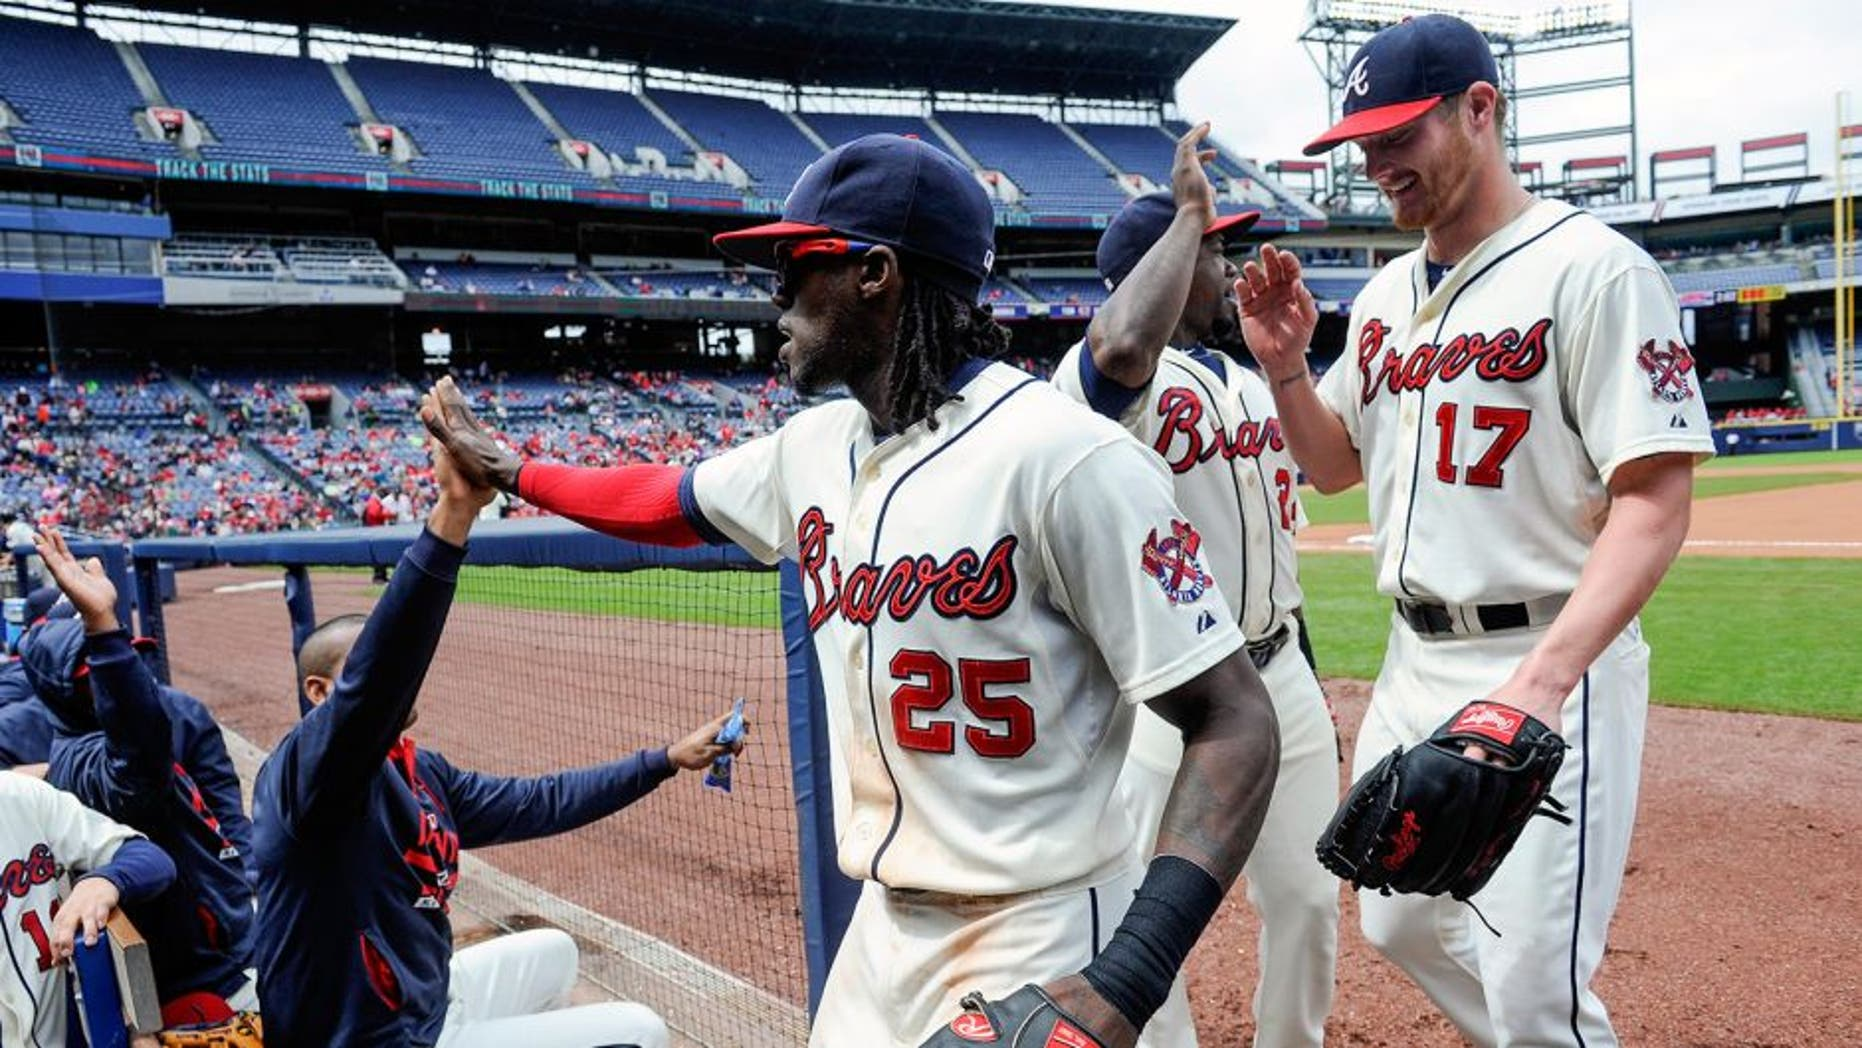 Atlanta Braves center fielder Cameron Maybin (25) is followed by pitcher Shelby Miller (17) as he is congratulated while entering the dugout after catching a fly ball hit by St. Louis Cardinals' Brandon Moss and throwing out Greg Garcia at first to turn a double play during the fourth inning of the first baseball game of a doubleheader, Sunday, Oct. 4, 2015, in Atlanta. (AP Photo/John Amis)